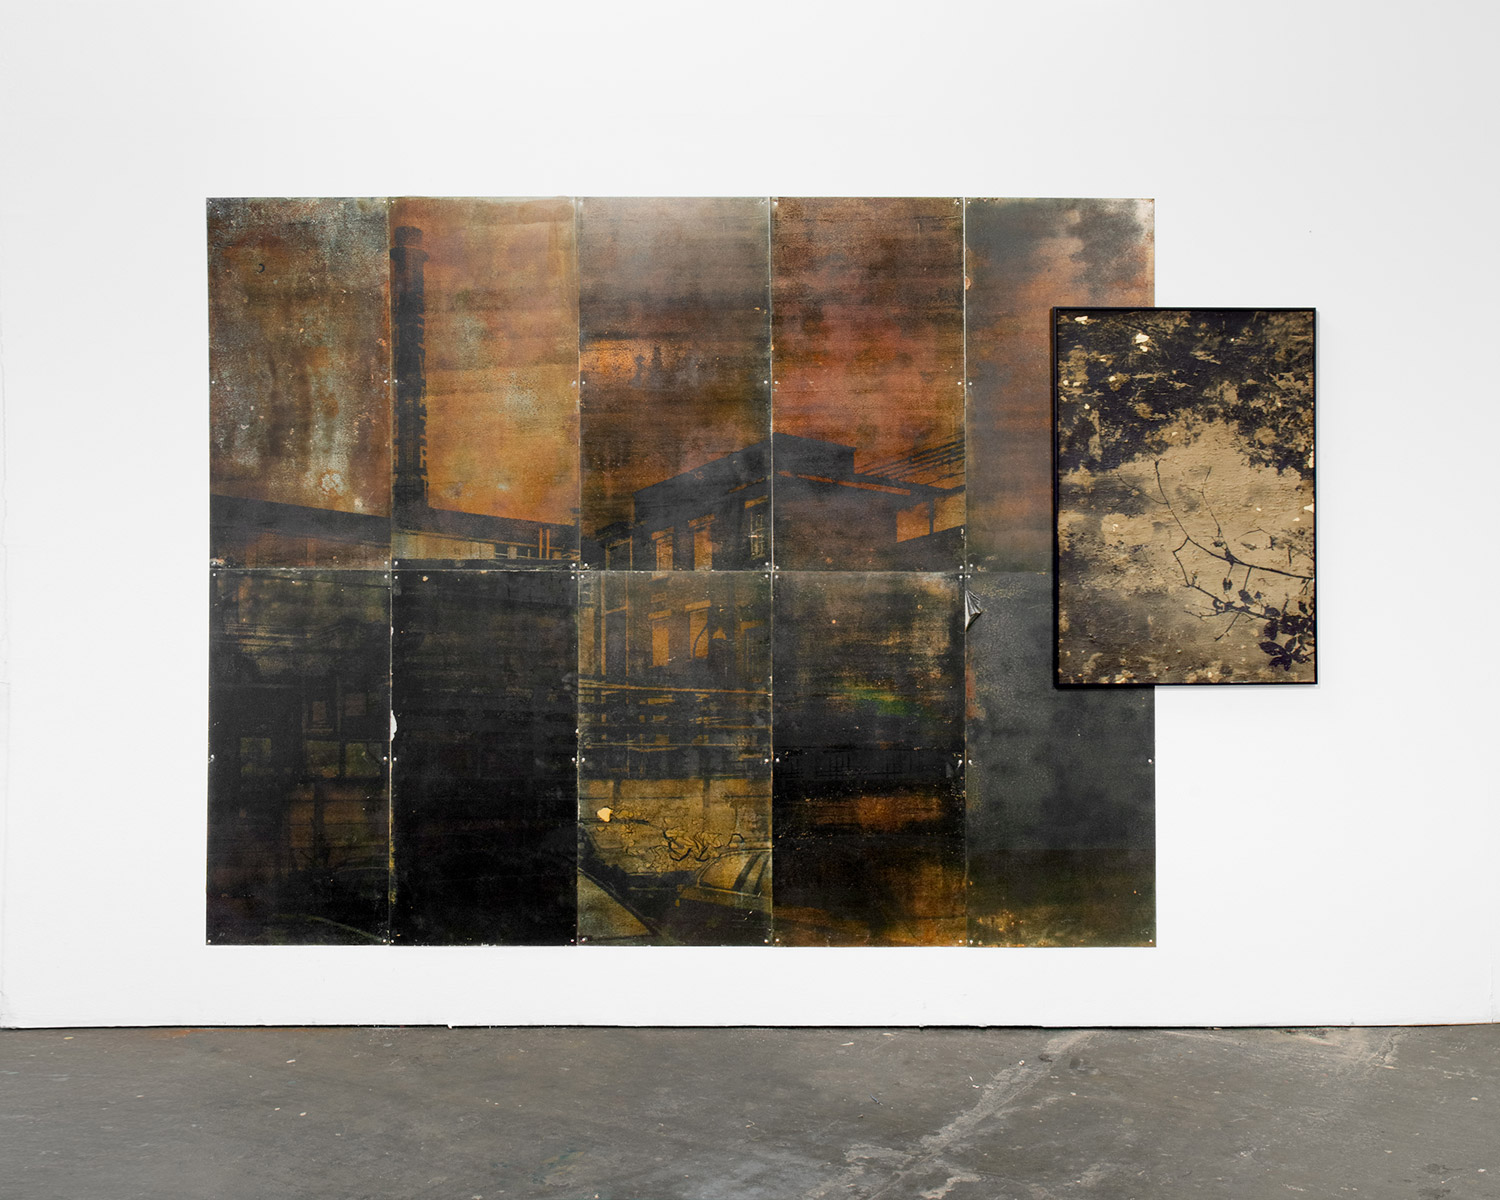 Lucas Leffler, Steel wall, wall installation made of oxidized steel plates, and silver mud prints, 2019